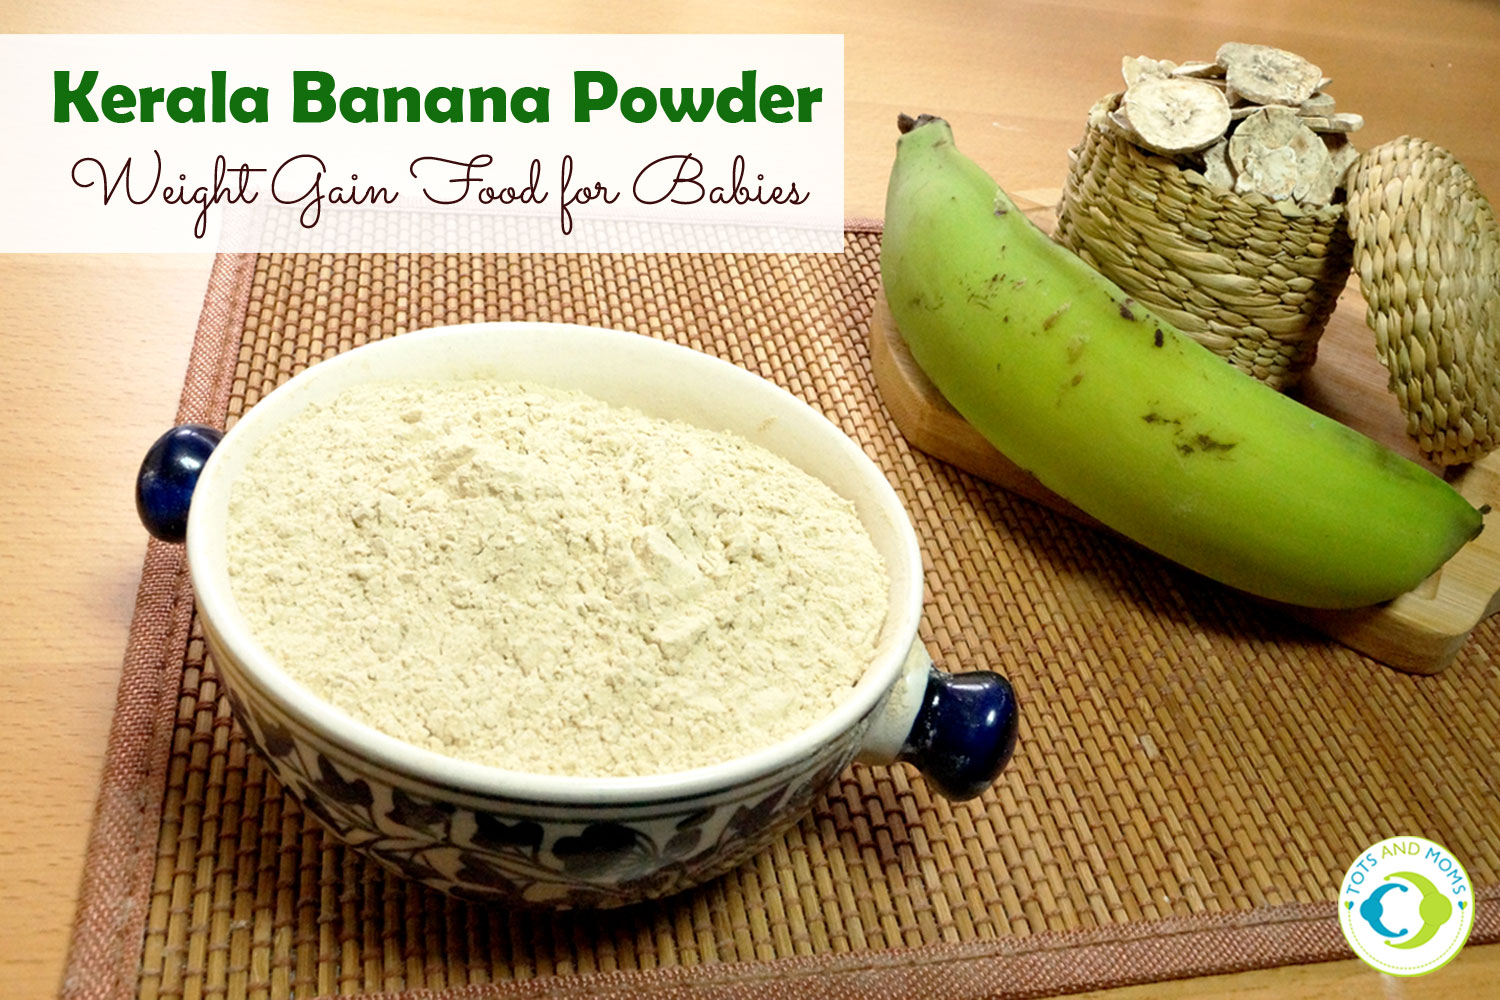 Kerala banana powder for babies toddlers kids tots and moms first food for babies raw kerala banana powder healthy weight gain for babies forumfinder Choice Image